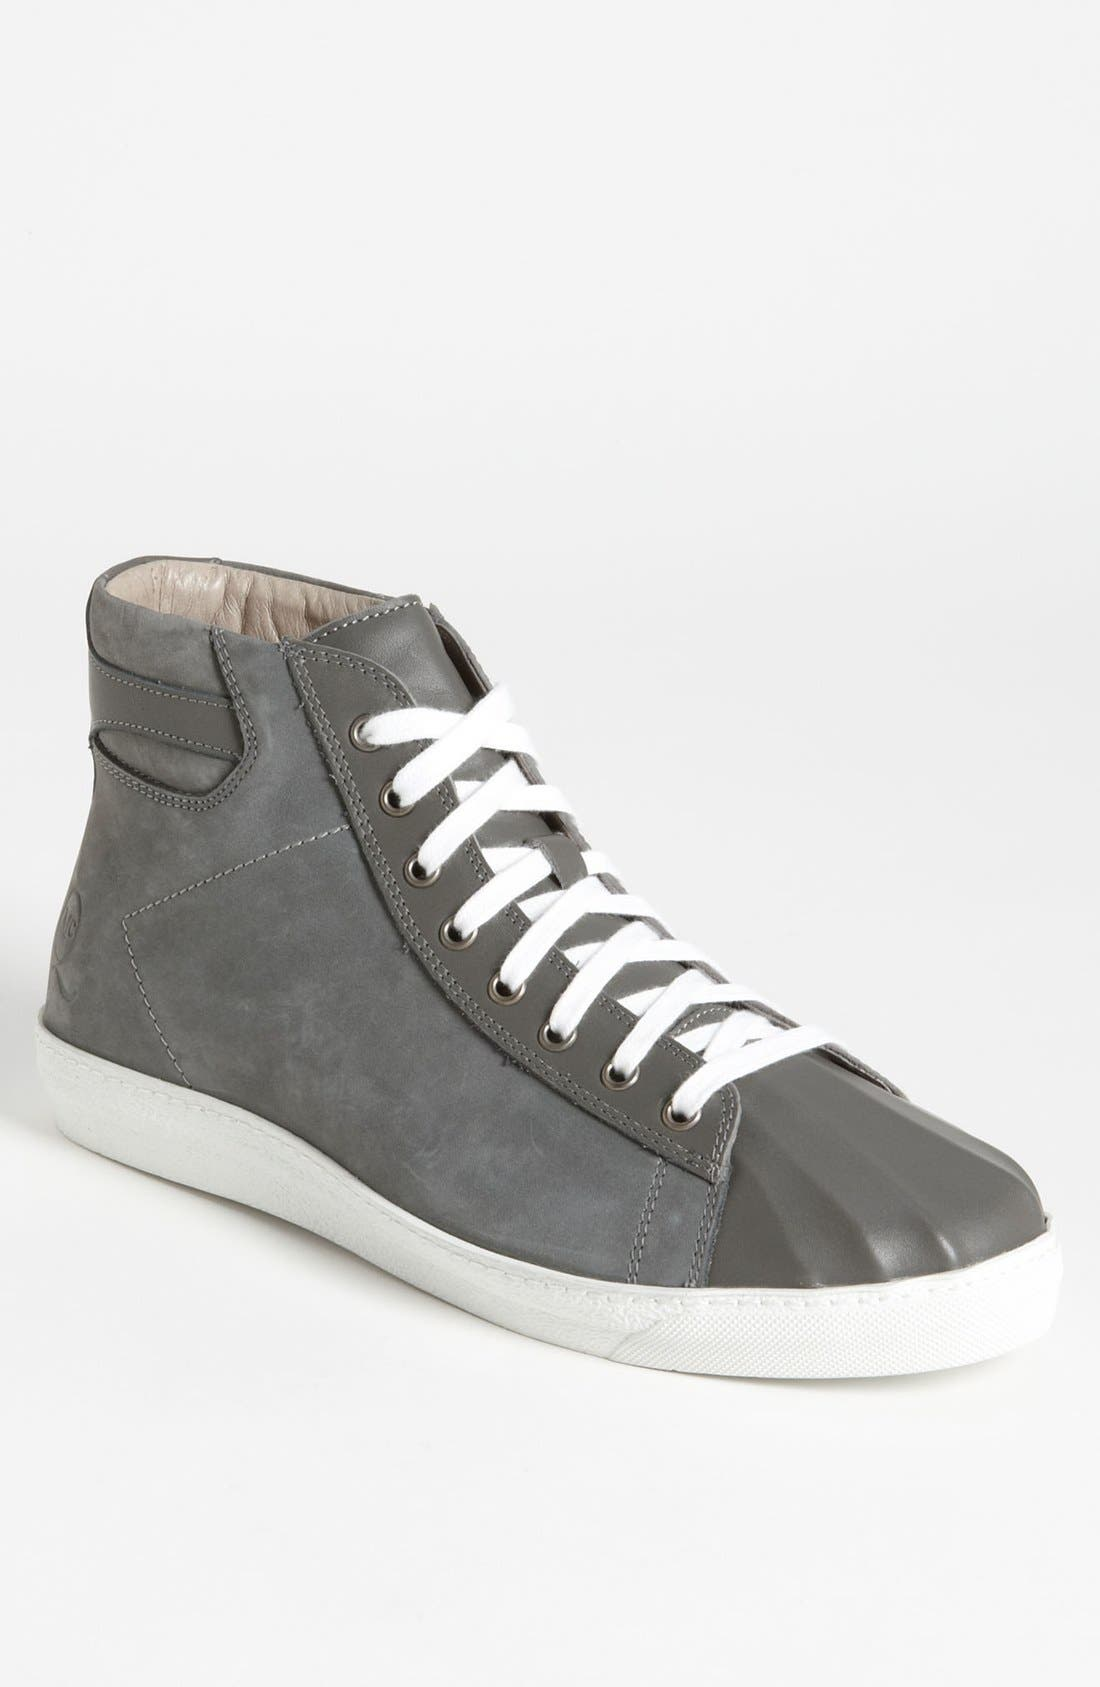 Alternate Image 1 Selected - McQ by Alexander McQueen Mid Top Sneaker